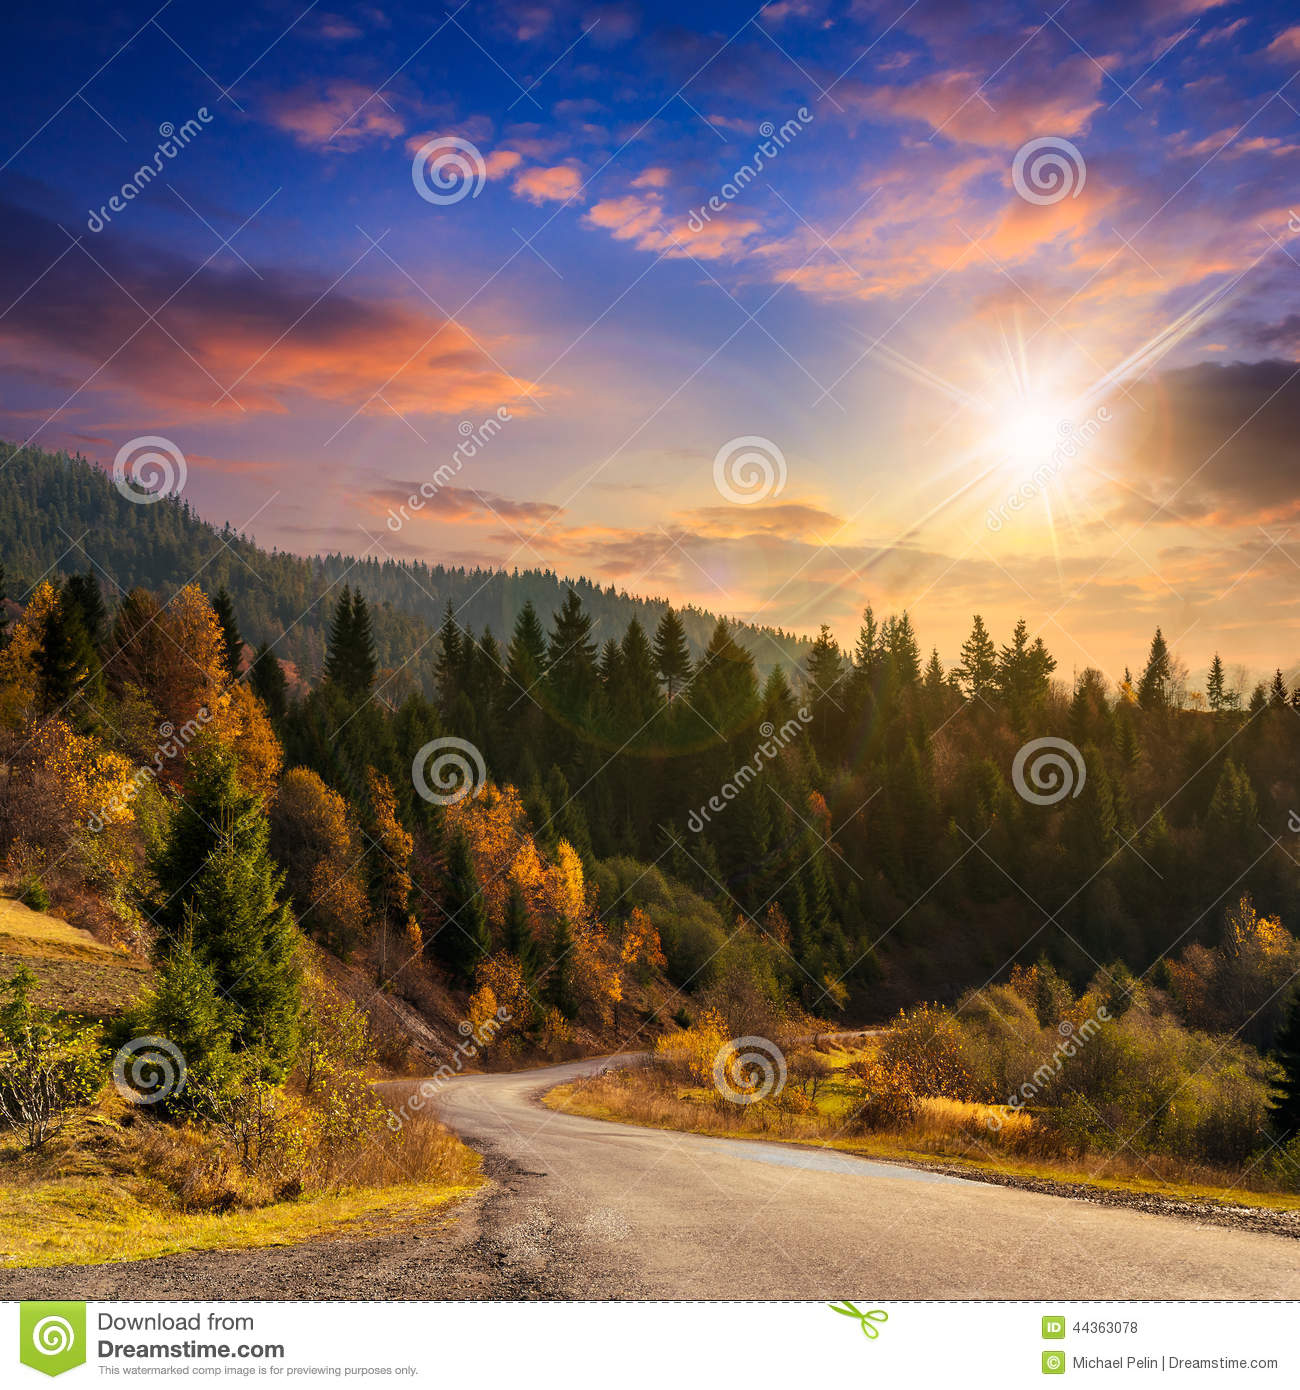 Winding road to forest in mountains at sunset